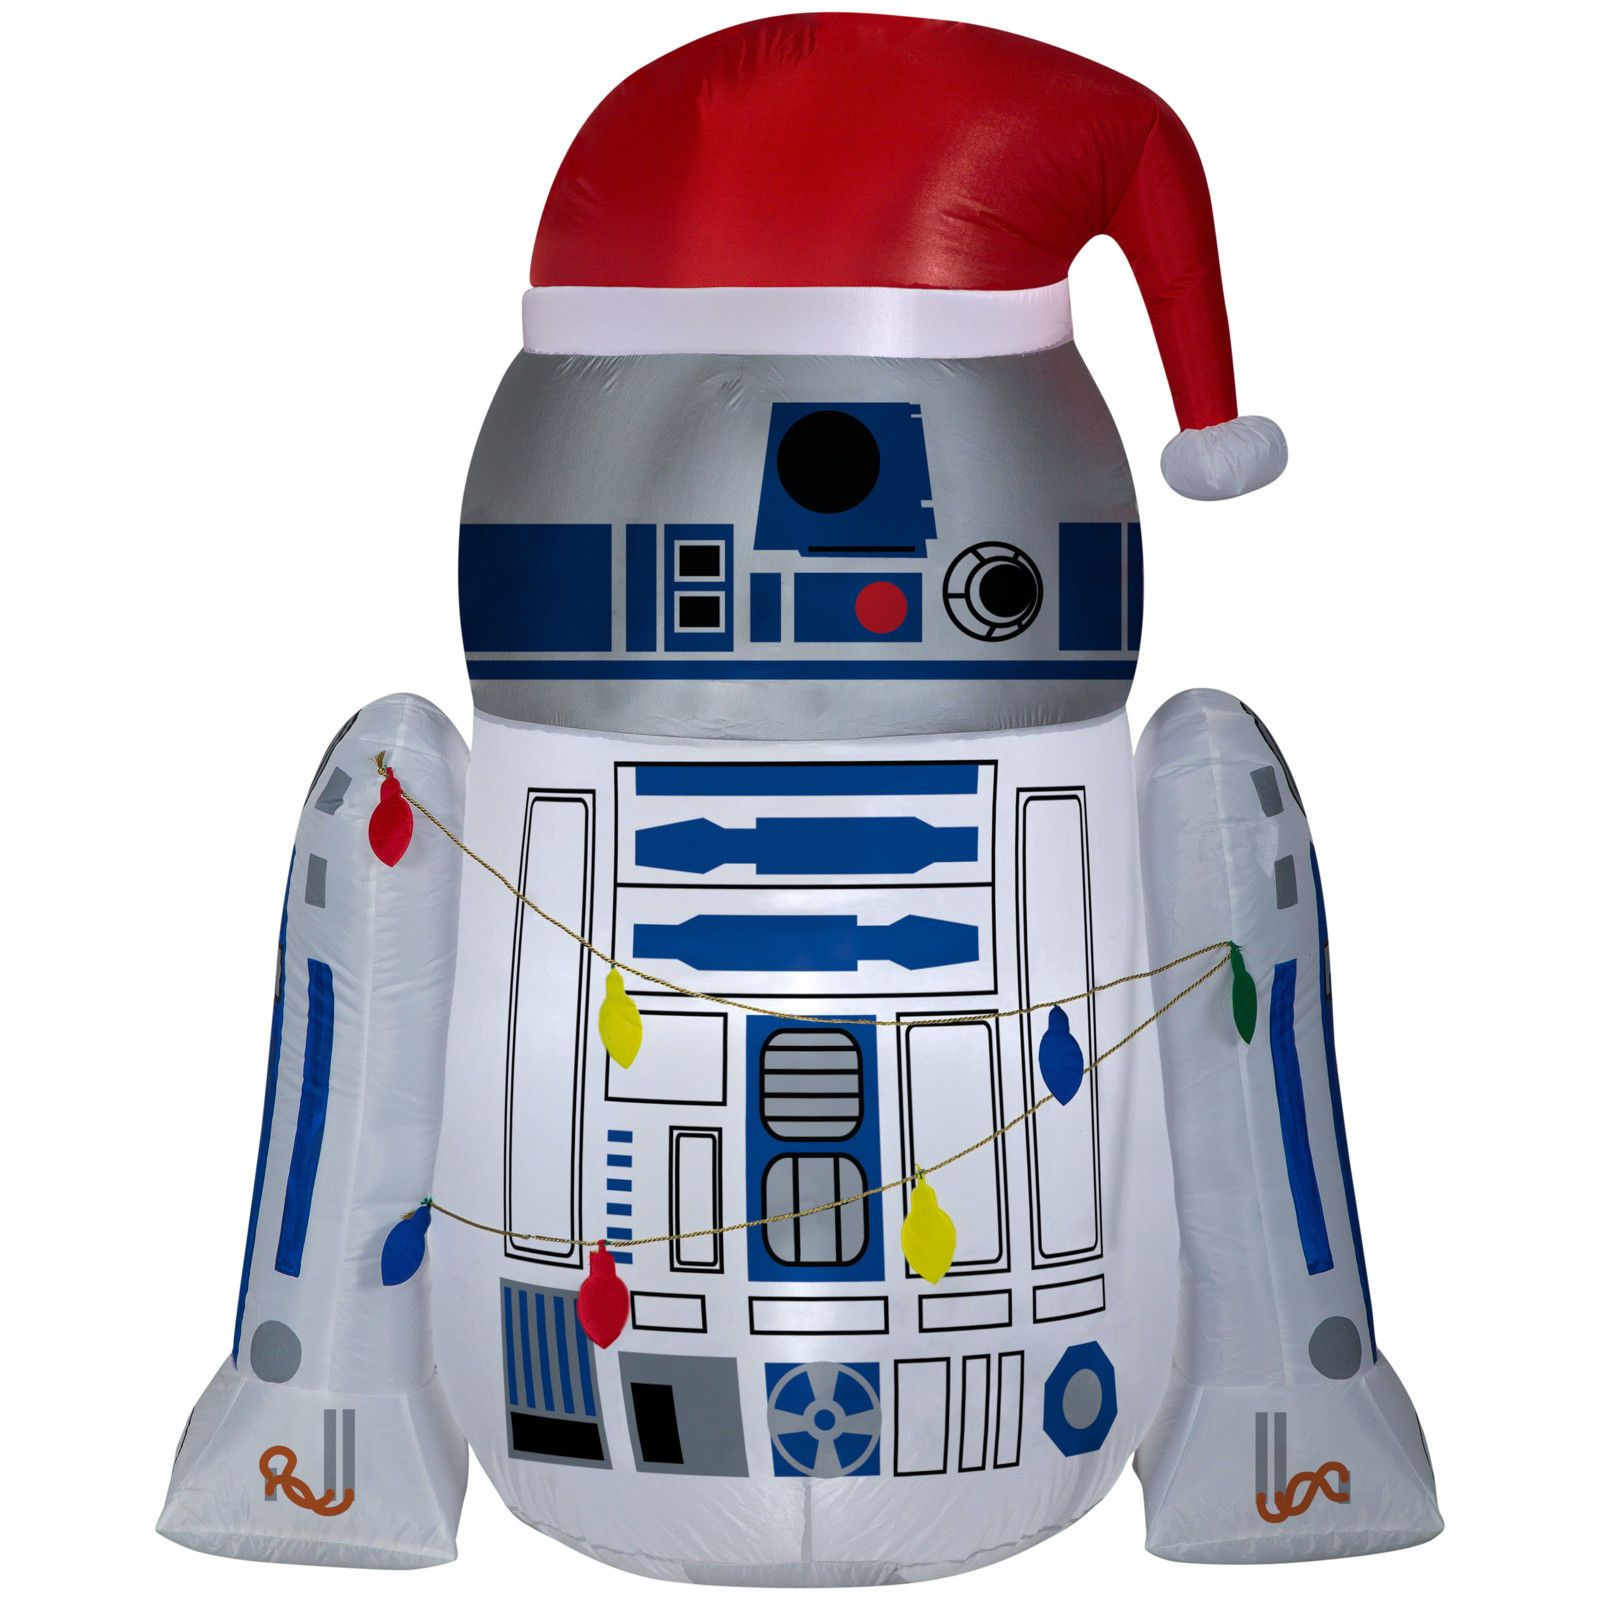 Details about Disney Star Wars R2 D2 Airblown Inflatable Christmas